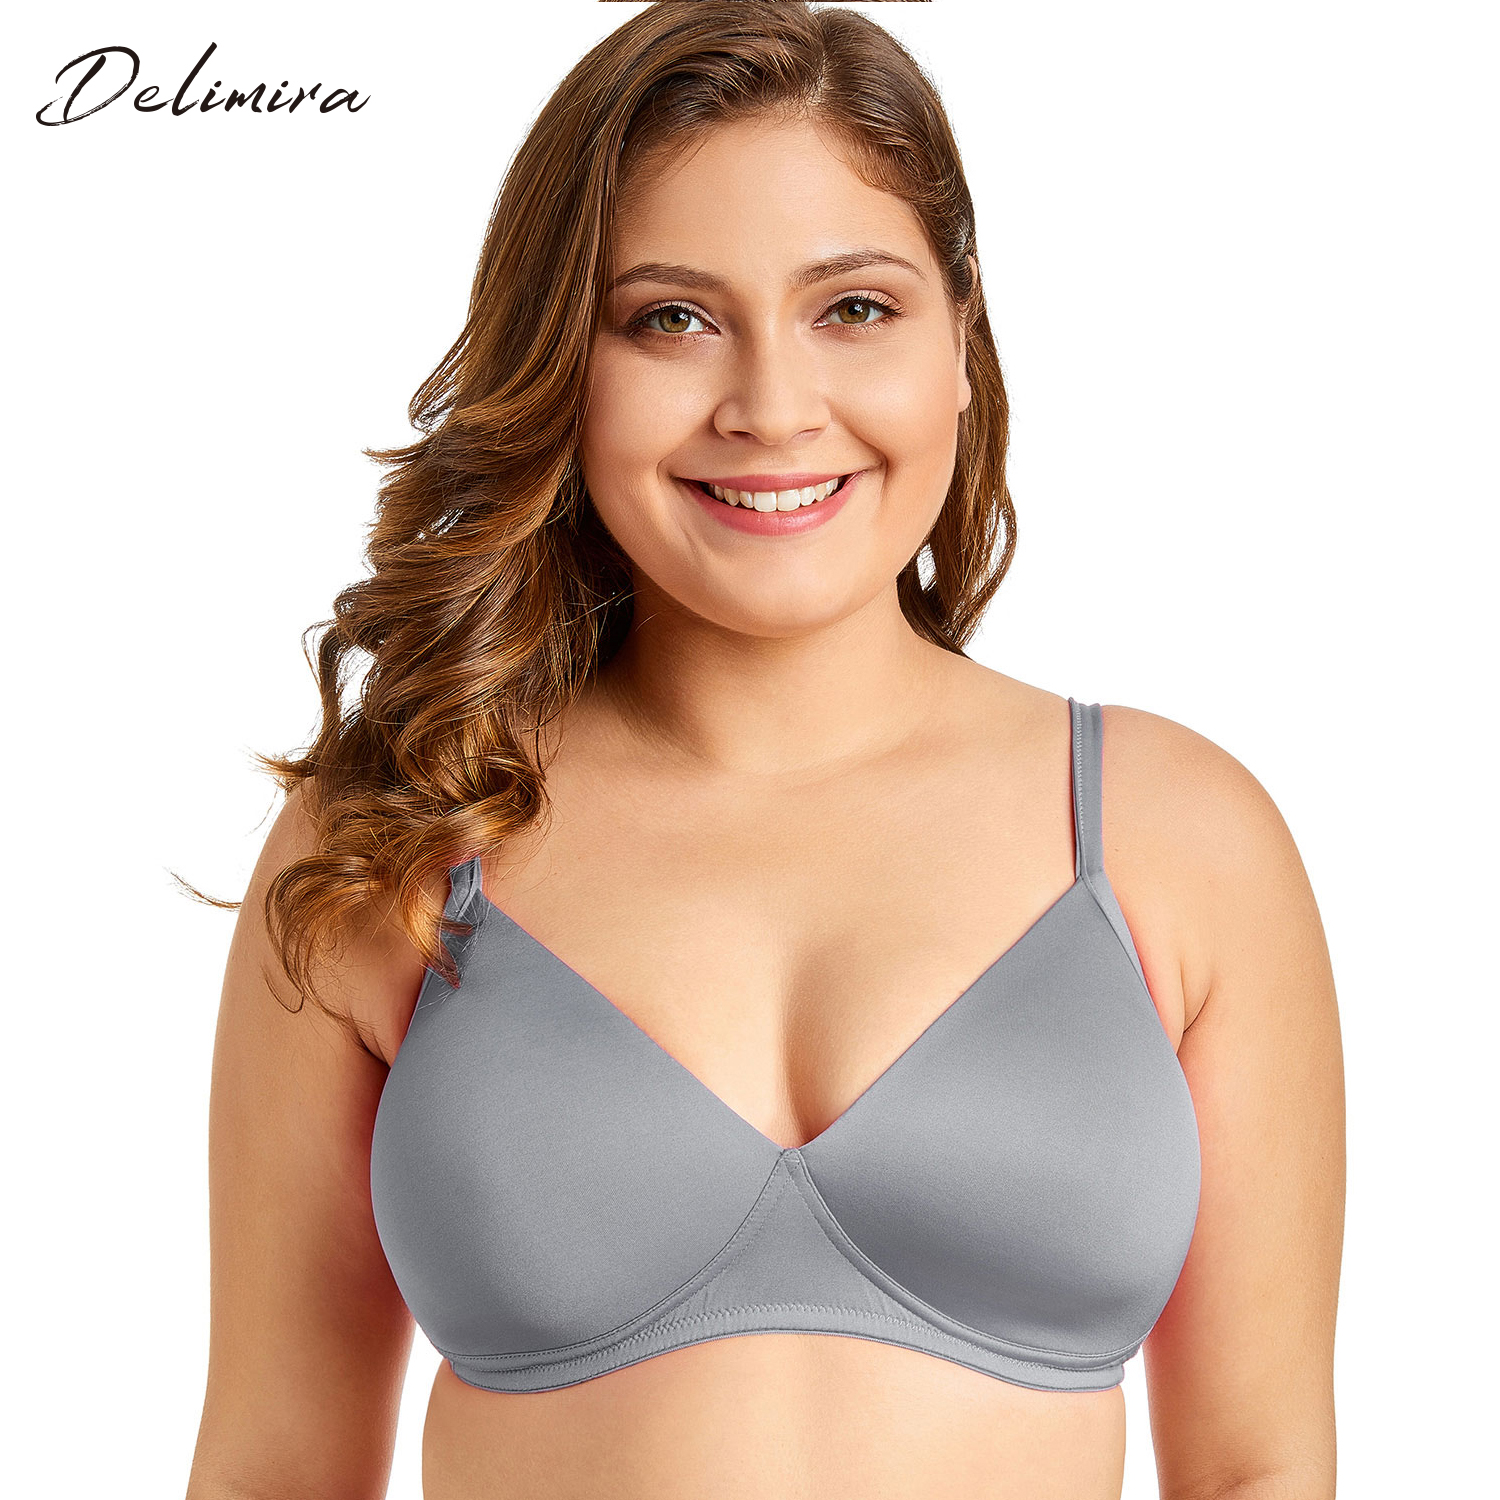 Delimira Women's Smooth Sexy Full Coverage Wire-Free Lightly Padded Triangle Contour T-shirt Bra